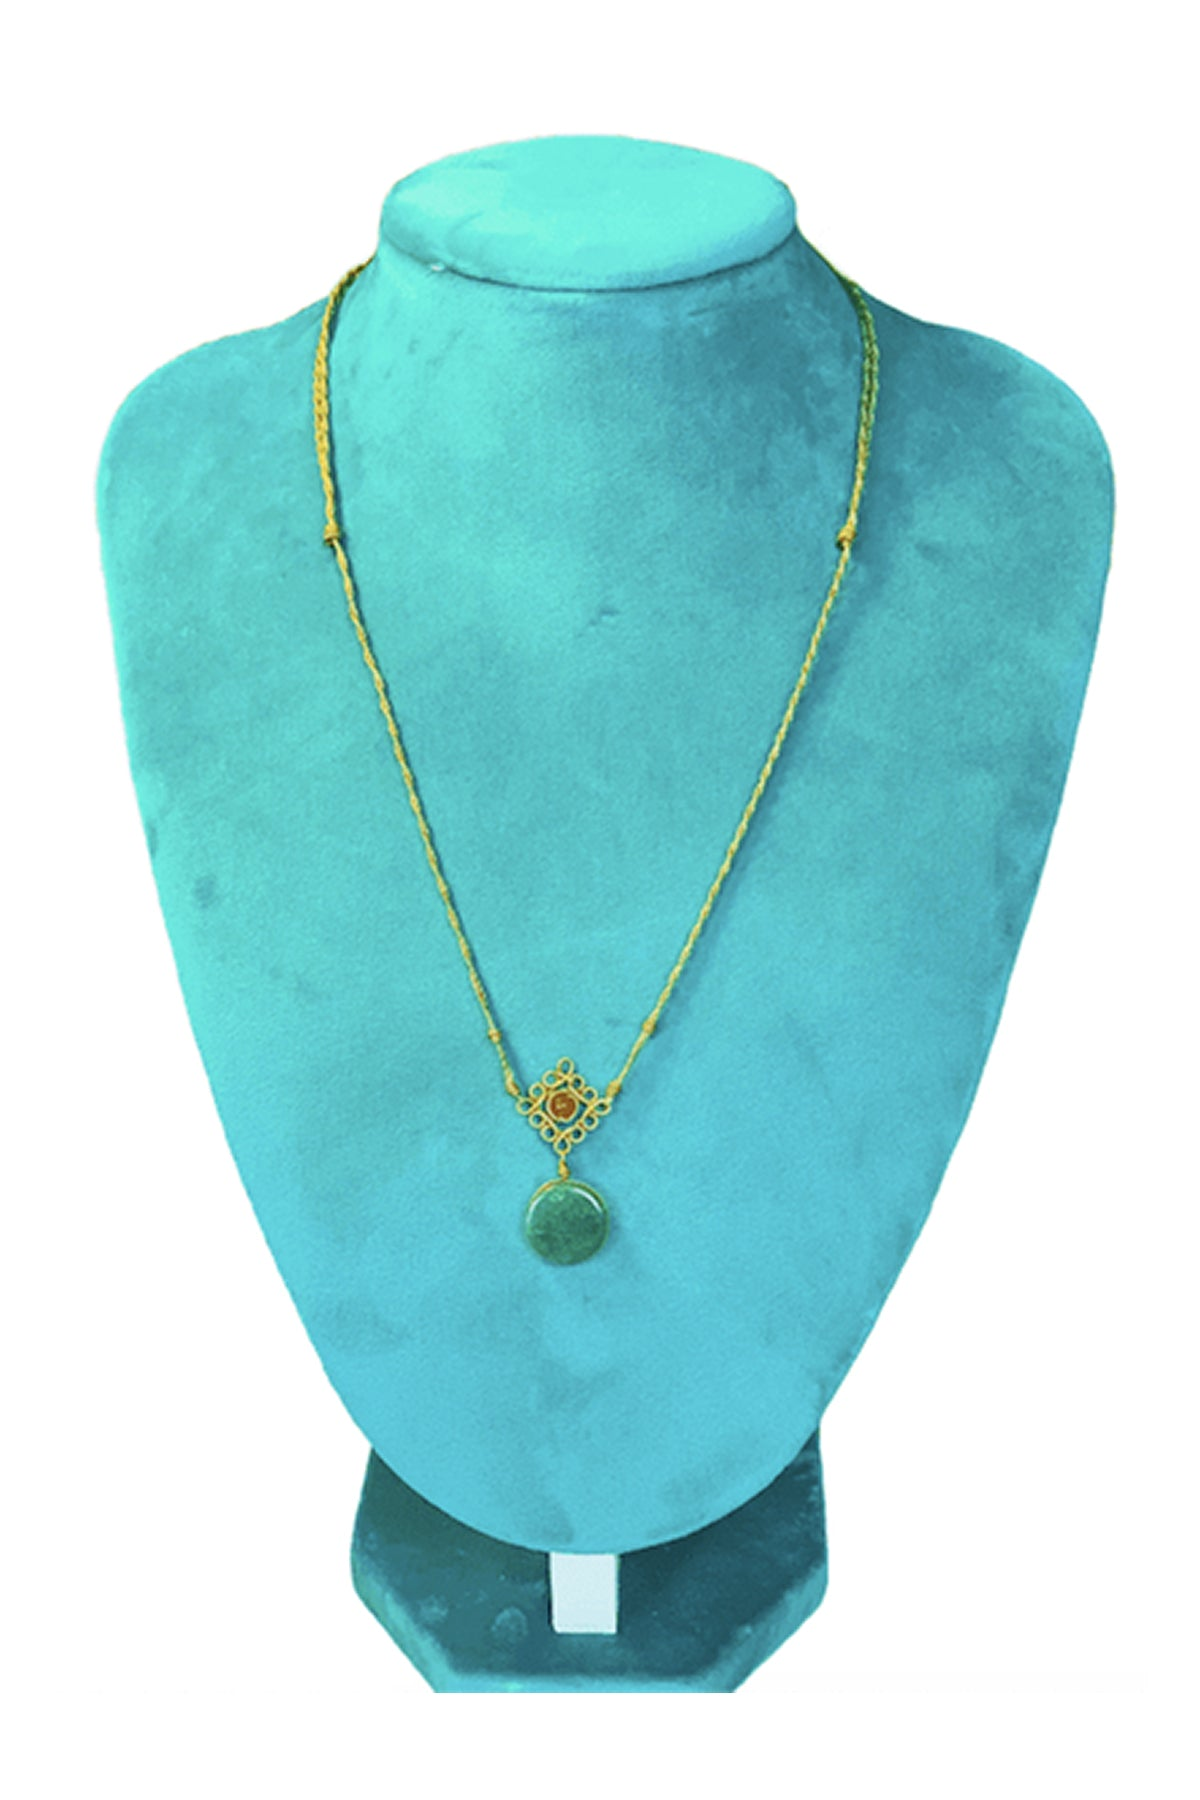 Mandala Necklace - Green And Verdite